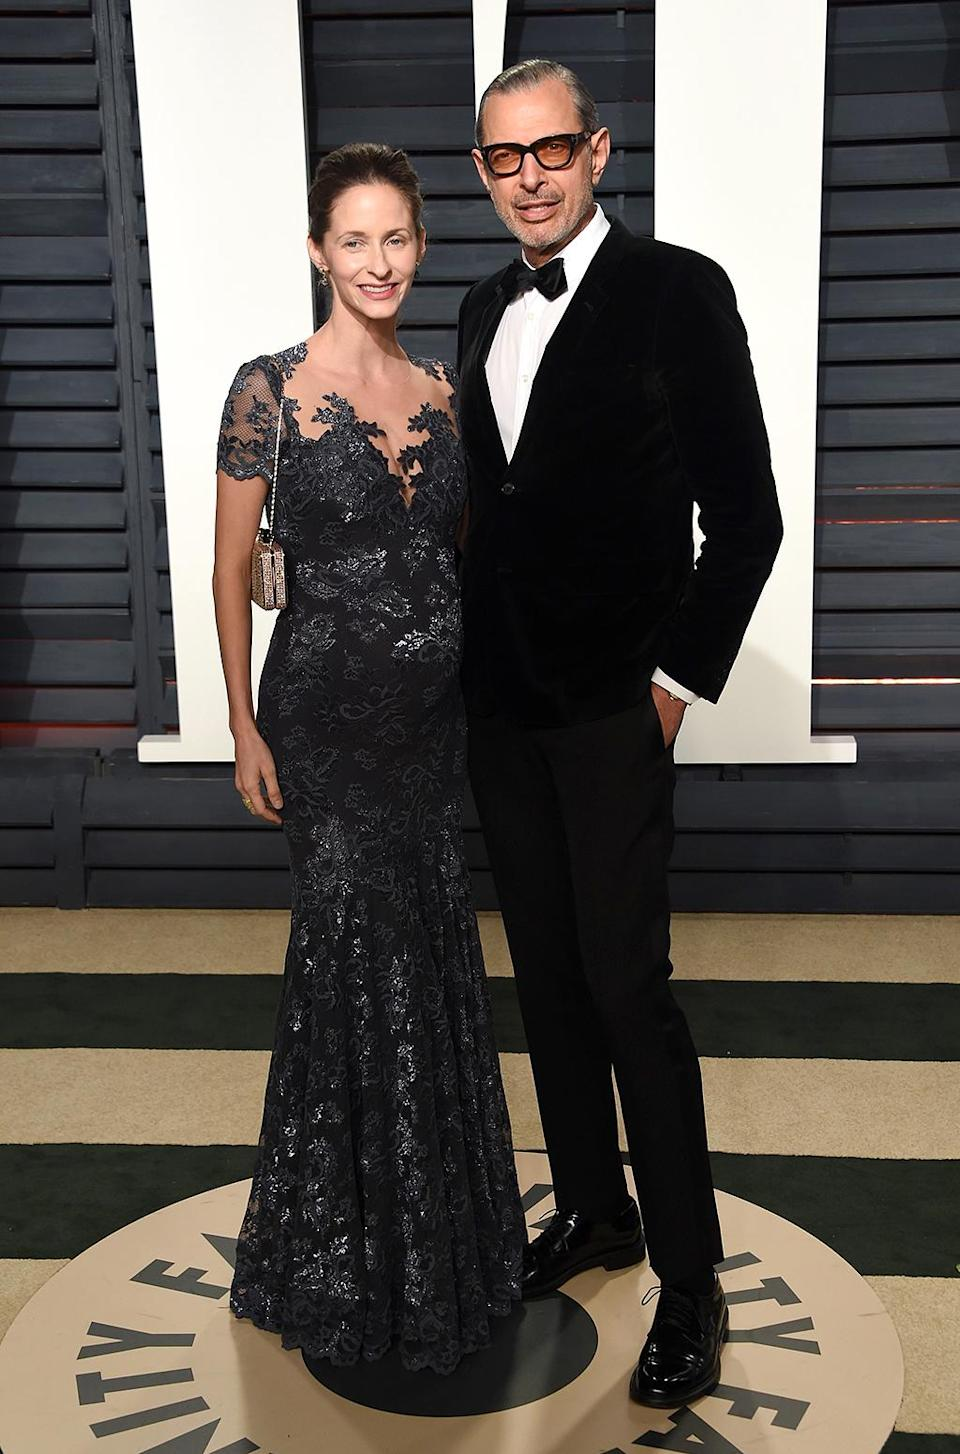 <p>Jeff Goldblum and Emilie Livingston at the 2017 Vanity Fair Oscar viewing party held at the Wallis Annenberg Center for the Performing Arts. (Photo: AKM-GSI) </p>